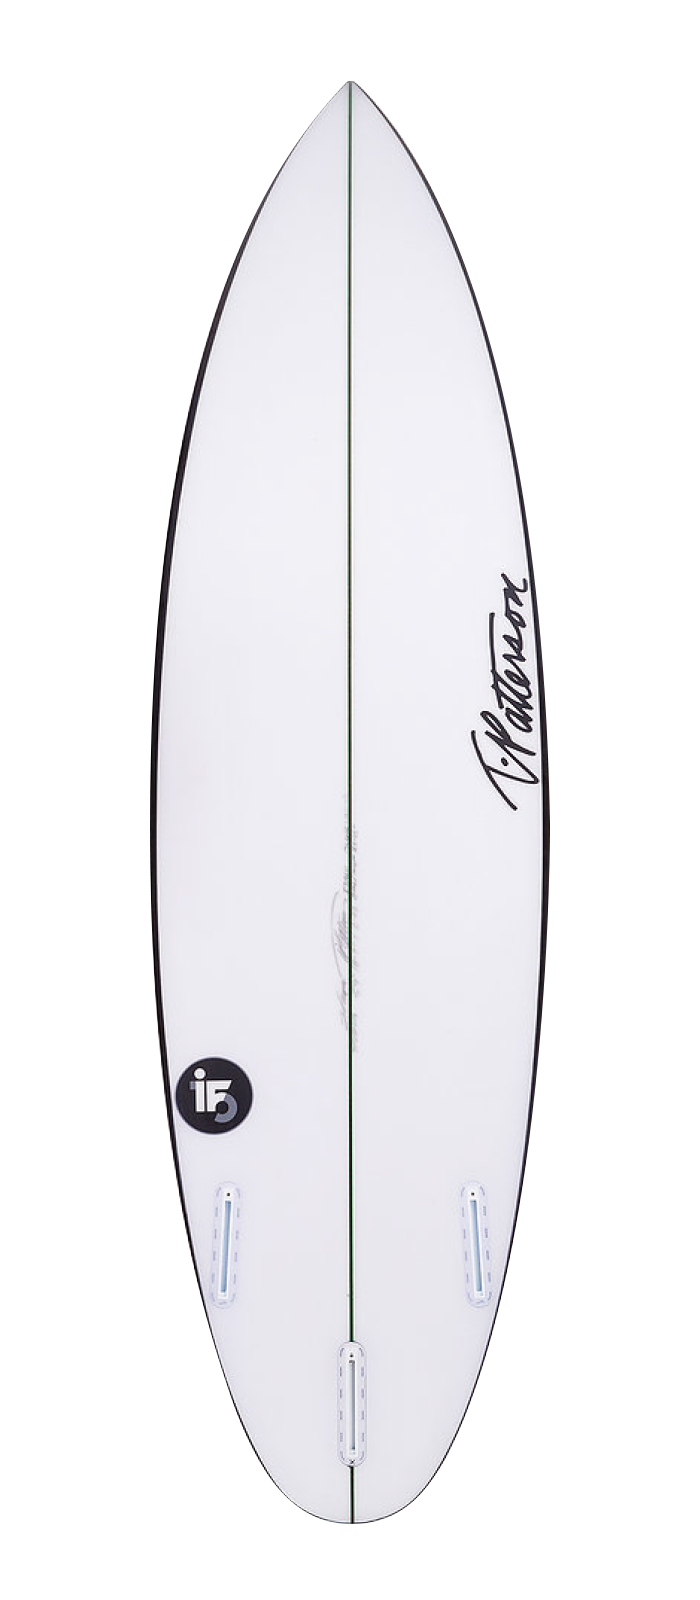 IT-15 surfboard model bottom